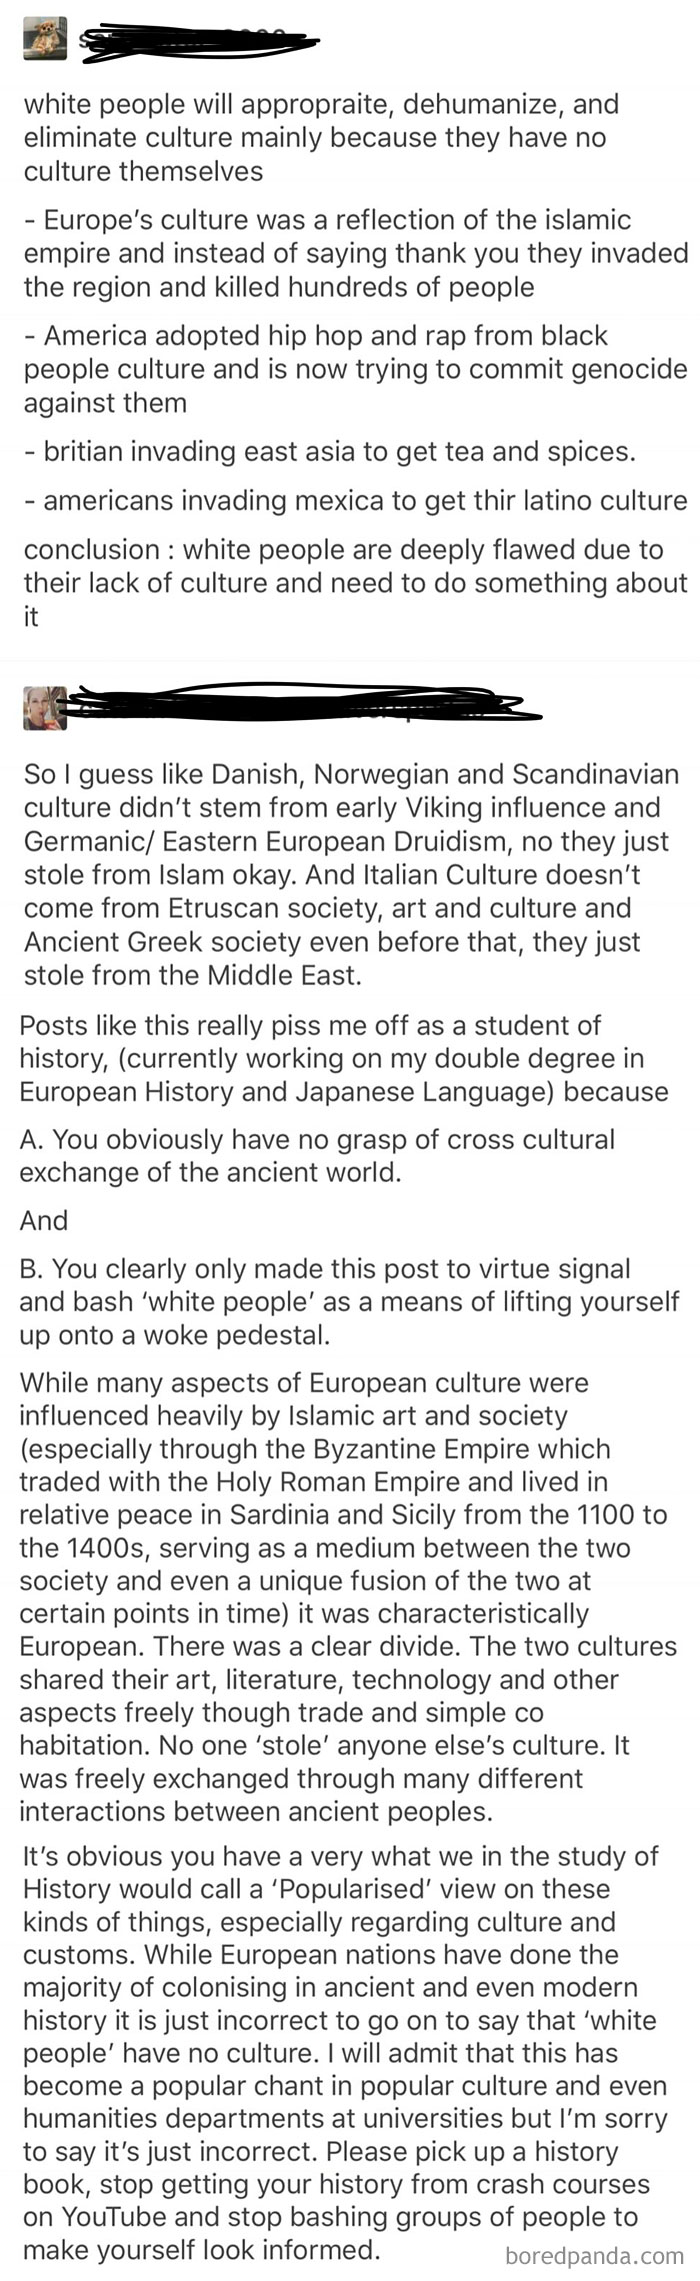 Racist Tumblr User Is Schooled In History